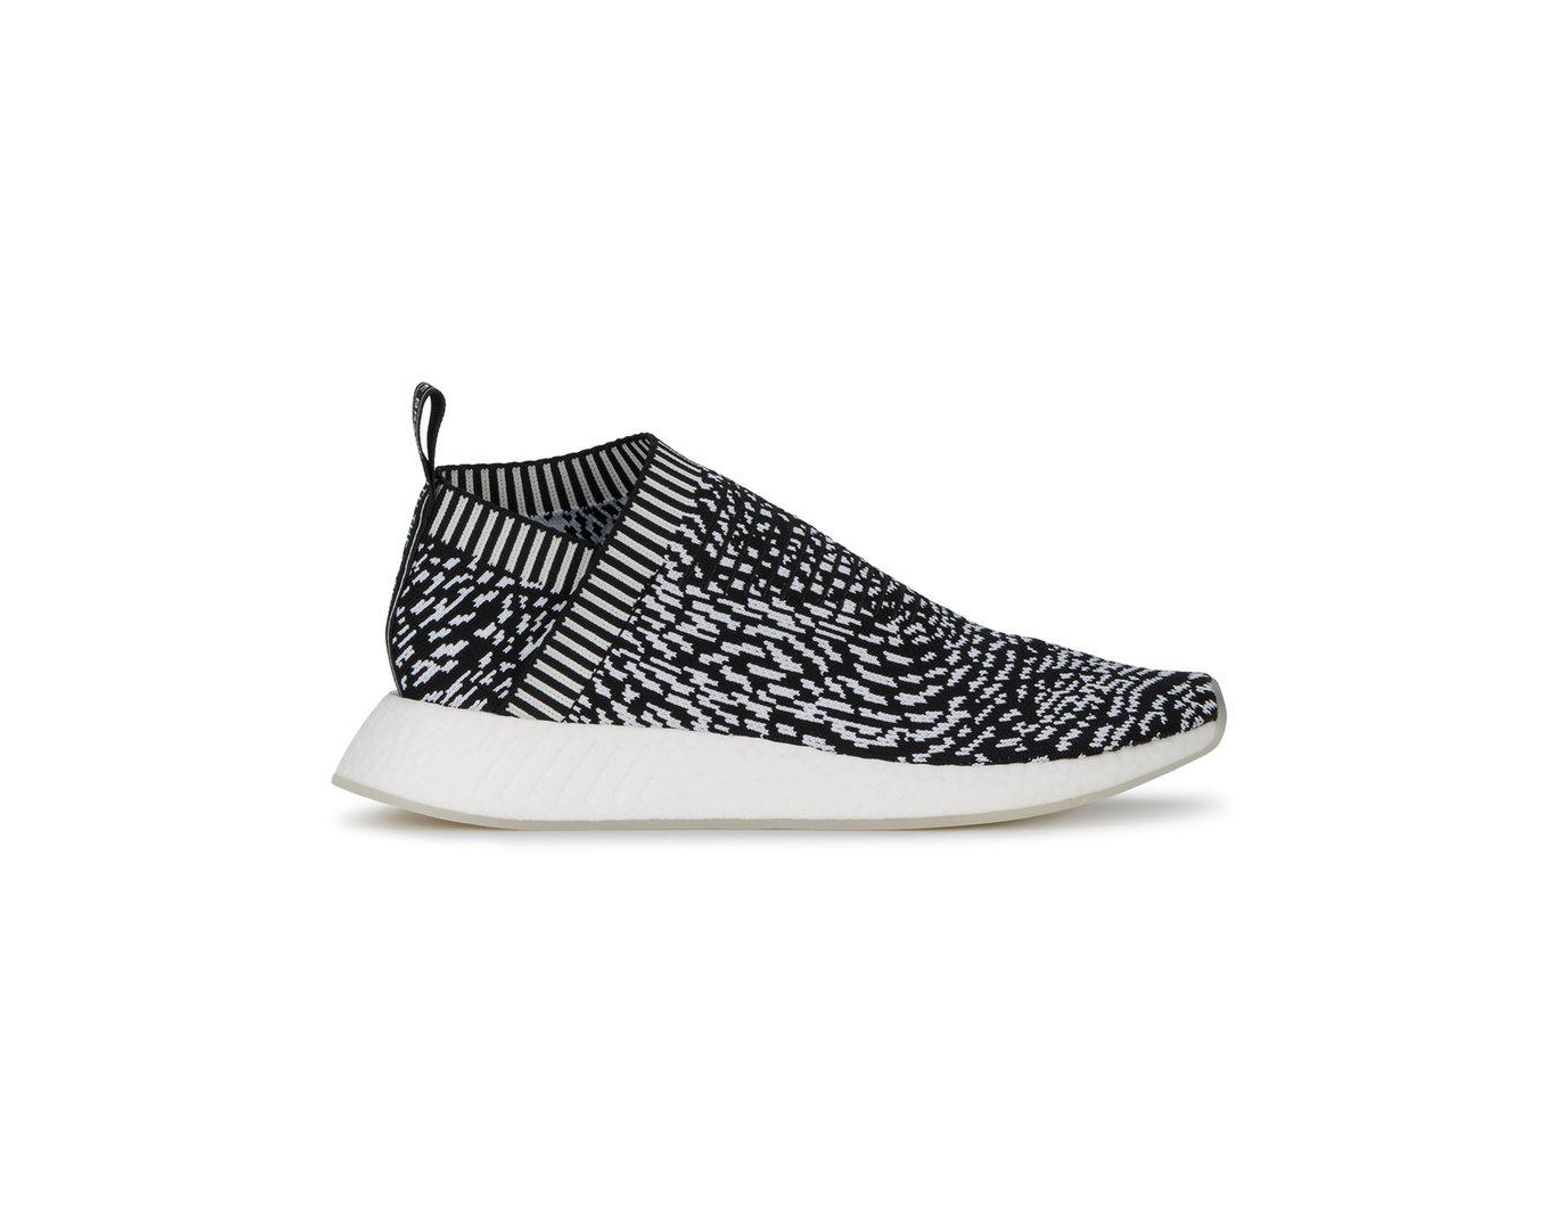 best sneakers 6aa0c f9937 adidas Originals Nmd cs2 Primeknit Sneakers in Black for Men - Save 61% -  Lyst